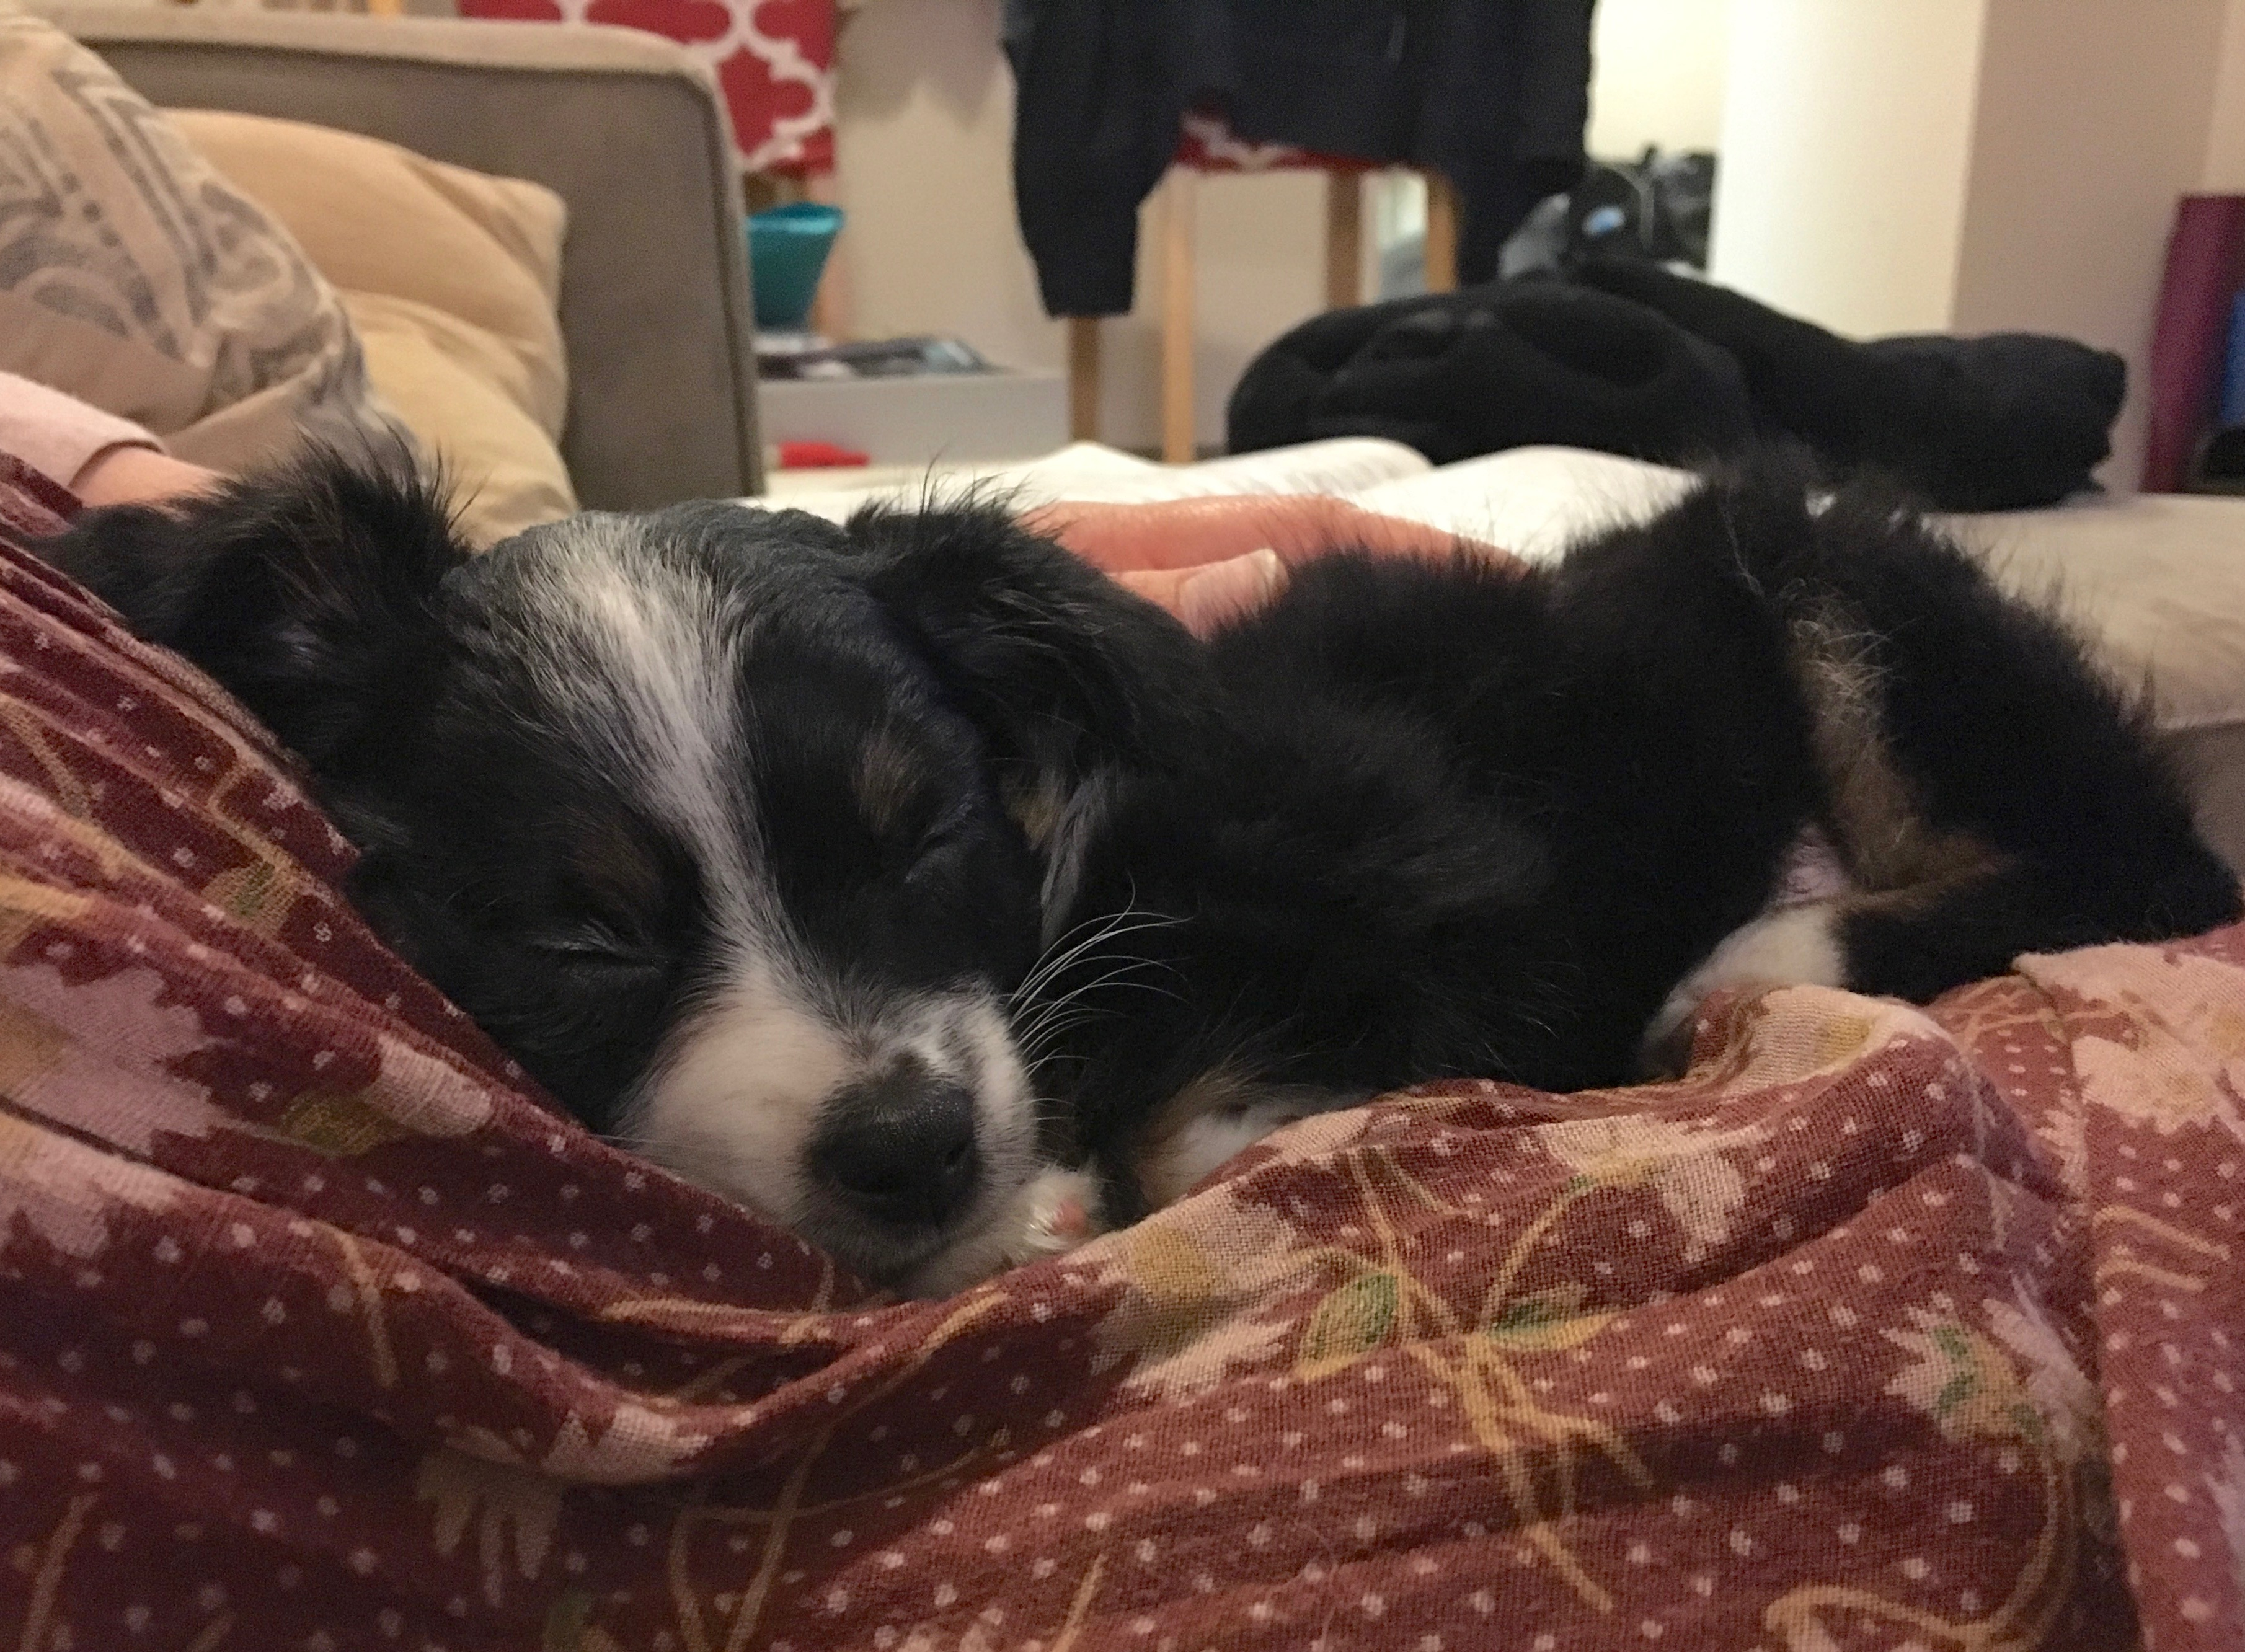 Ridiculously Adorable Australian Shepherd Puppy Napping